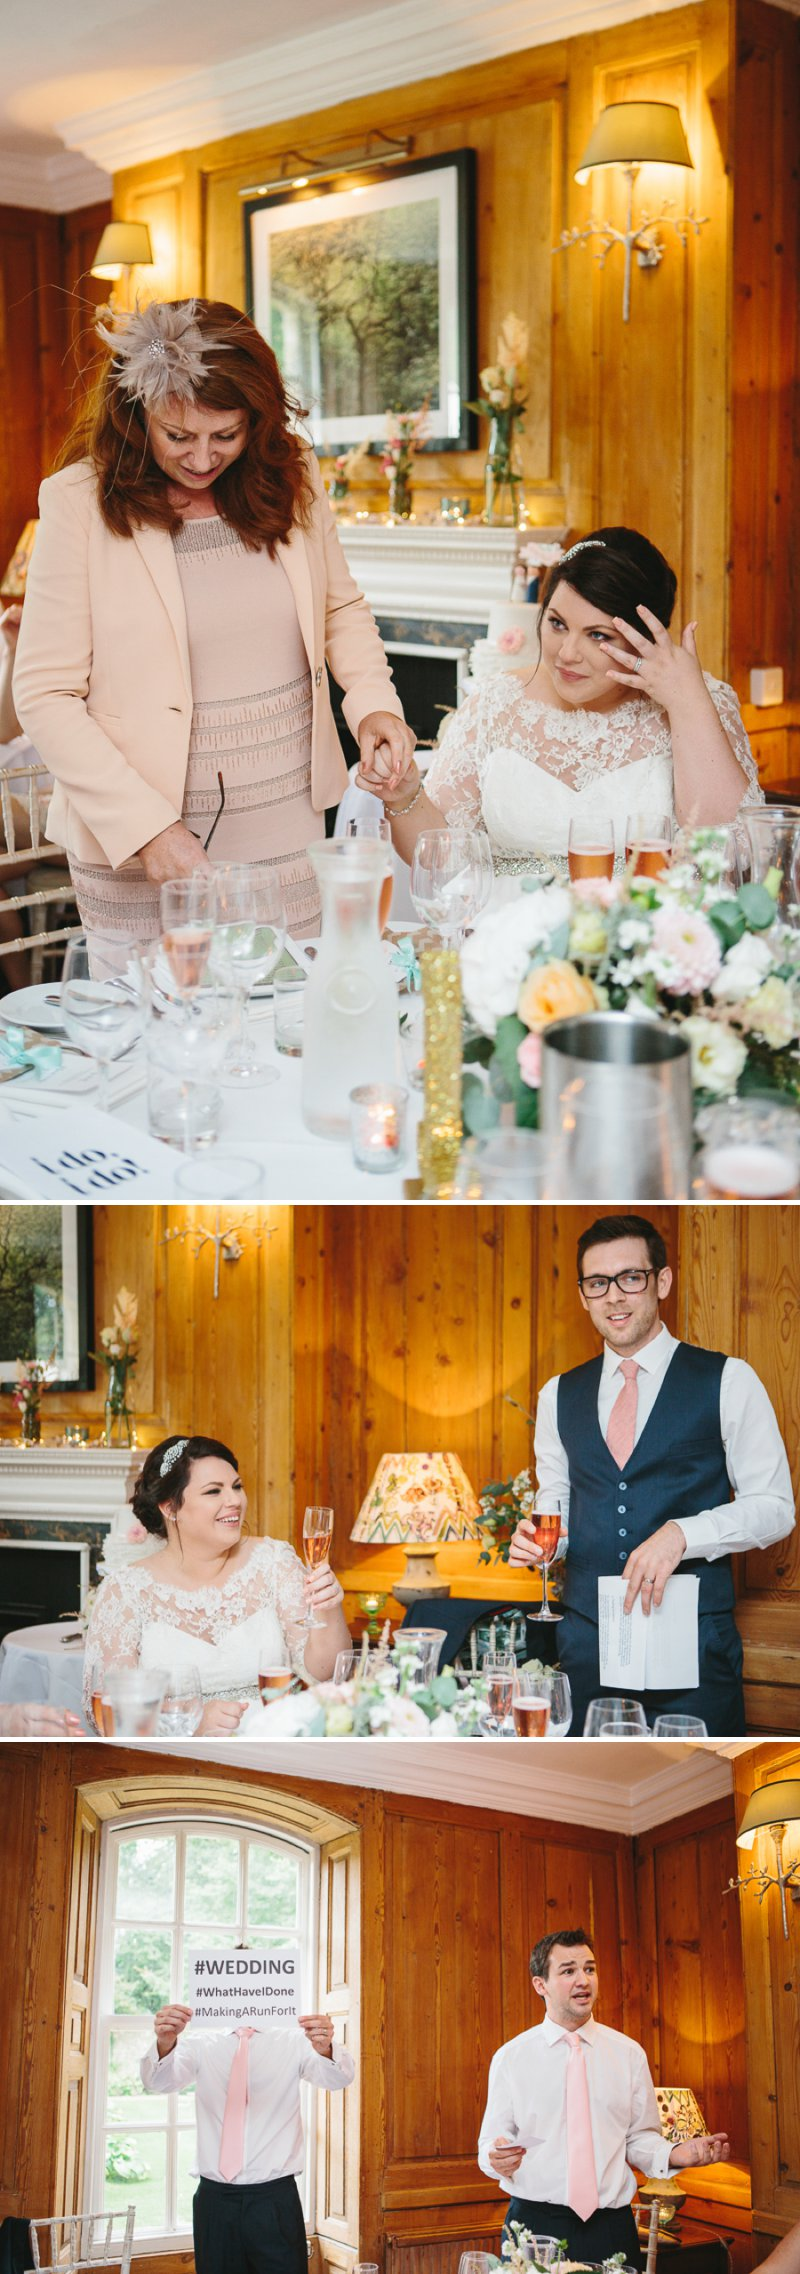 Blush Pink And Gold Glitter Themed Wedding At The Rectory Hotel With Bride In Bespoke Gown By Dana Bolton And Groom In Ted Baker Pashion Suit With Elegant Typography Across The Paper Goods And Images By Shell de Mar Photography 11